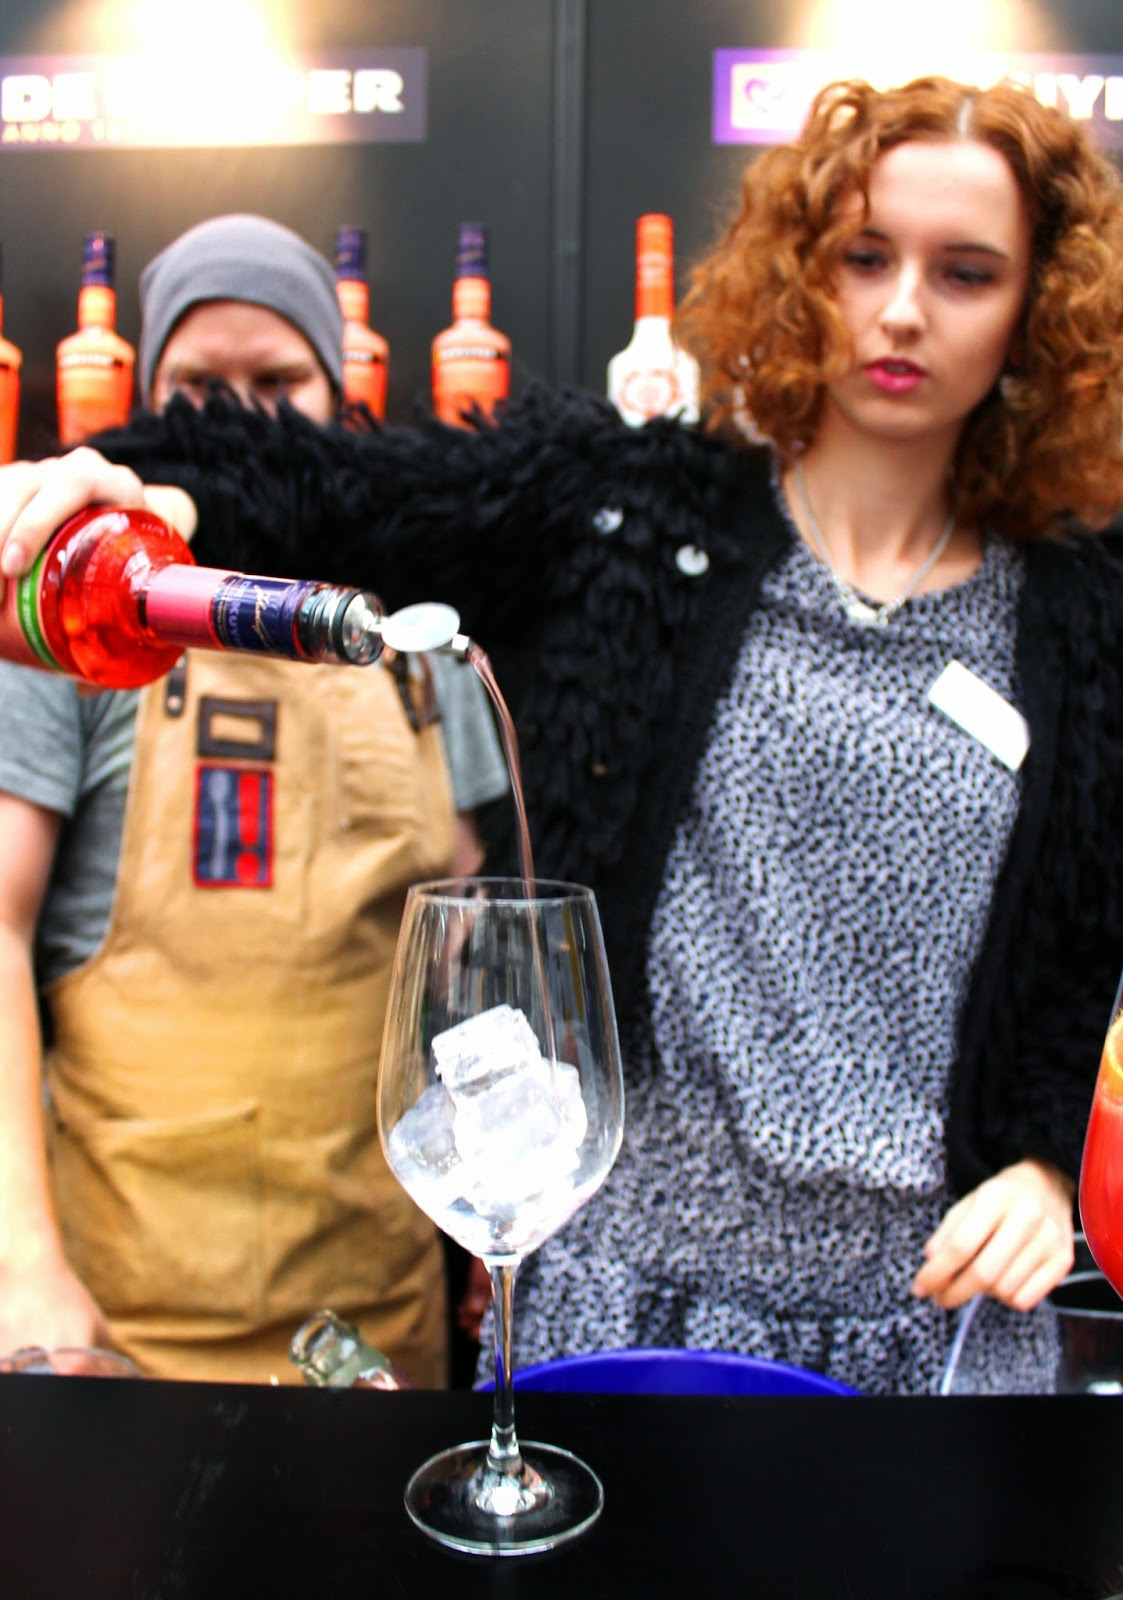 Finnish model Elina Isokangas making a drink in indiedays bloggers inspiration day